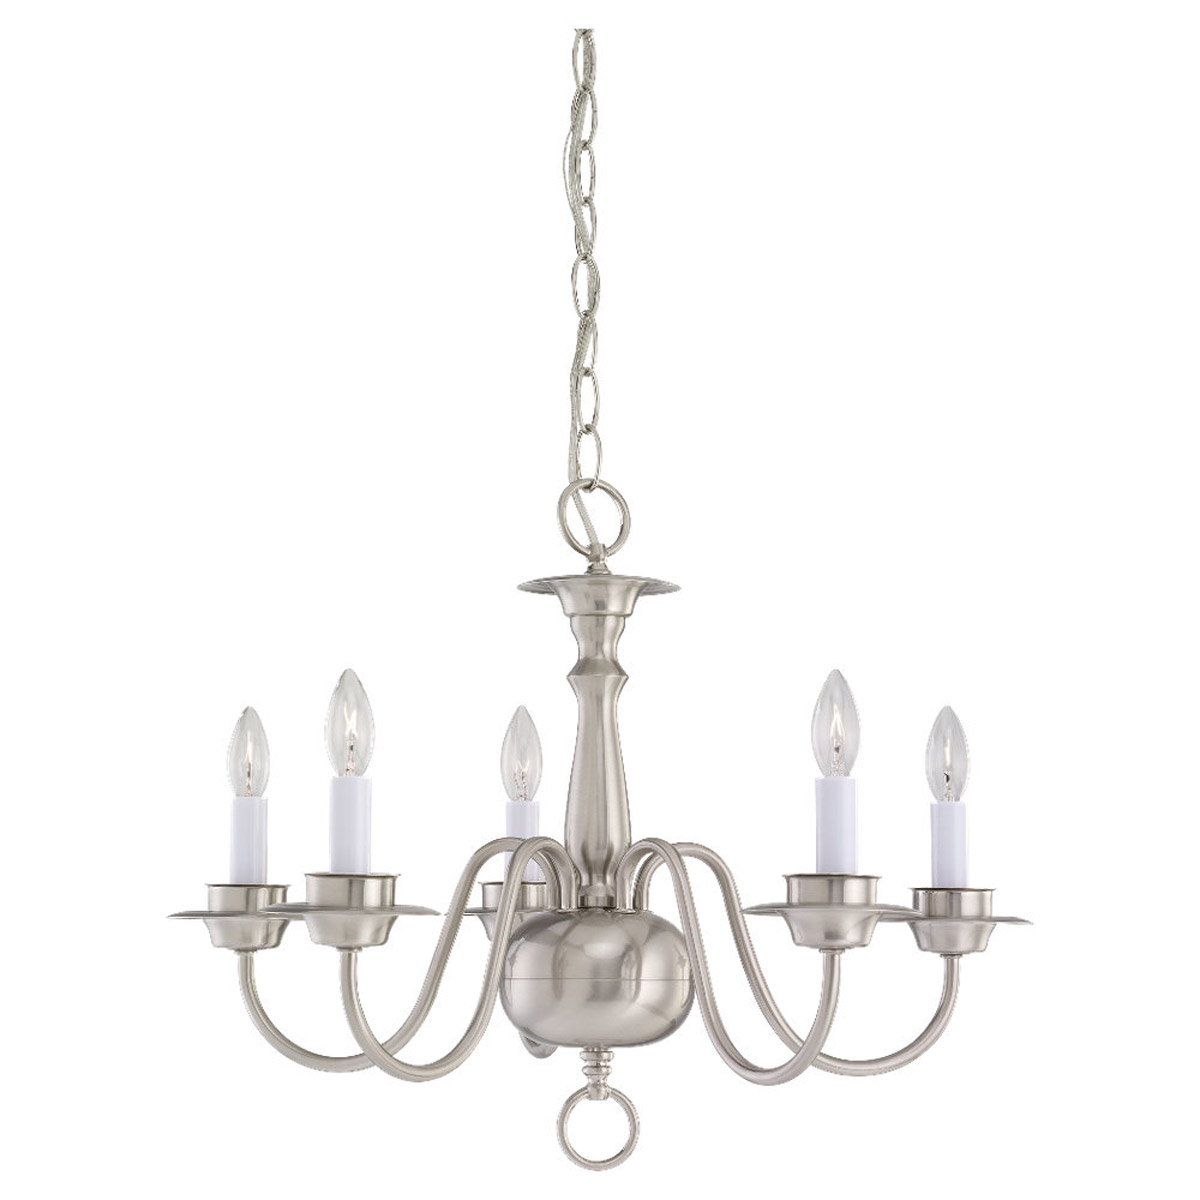 Sea Gull Lighting Traditional 5 Light Chandelier in Brushed Nickel 3314-962